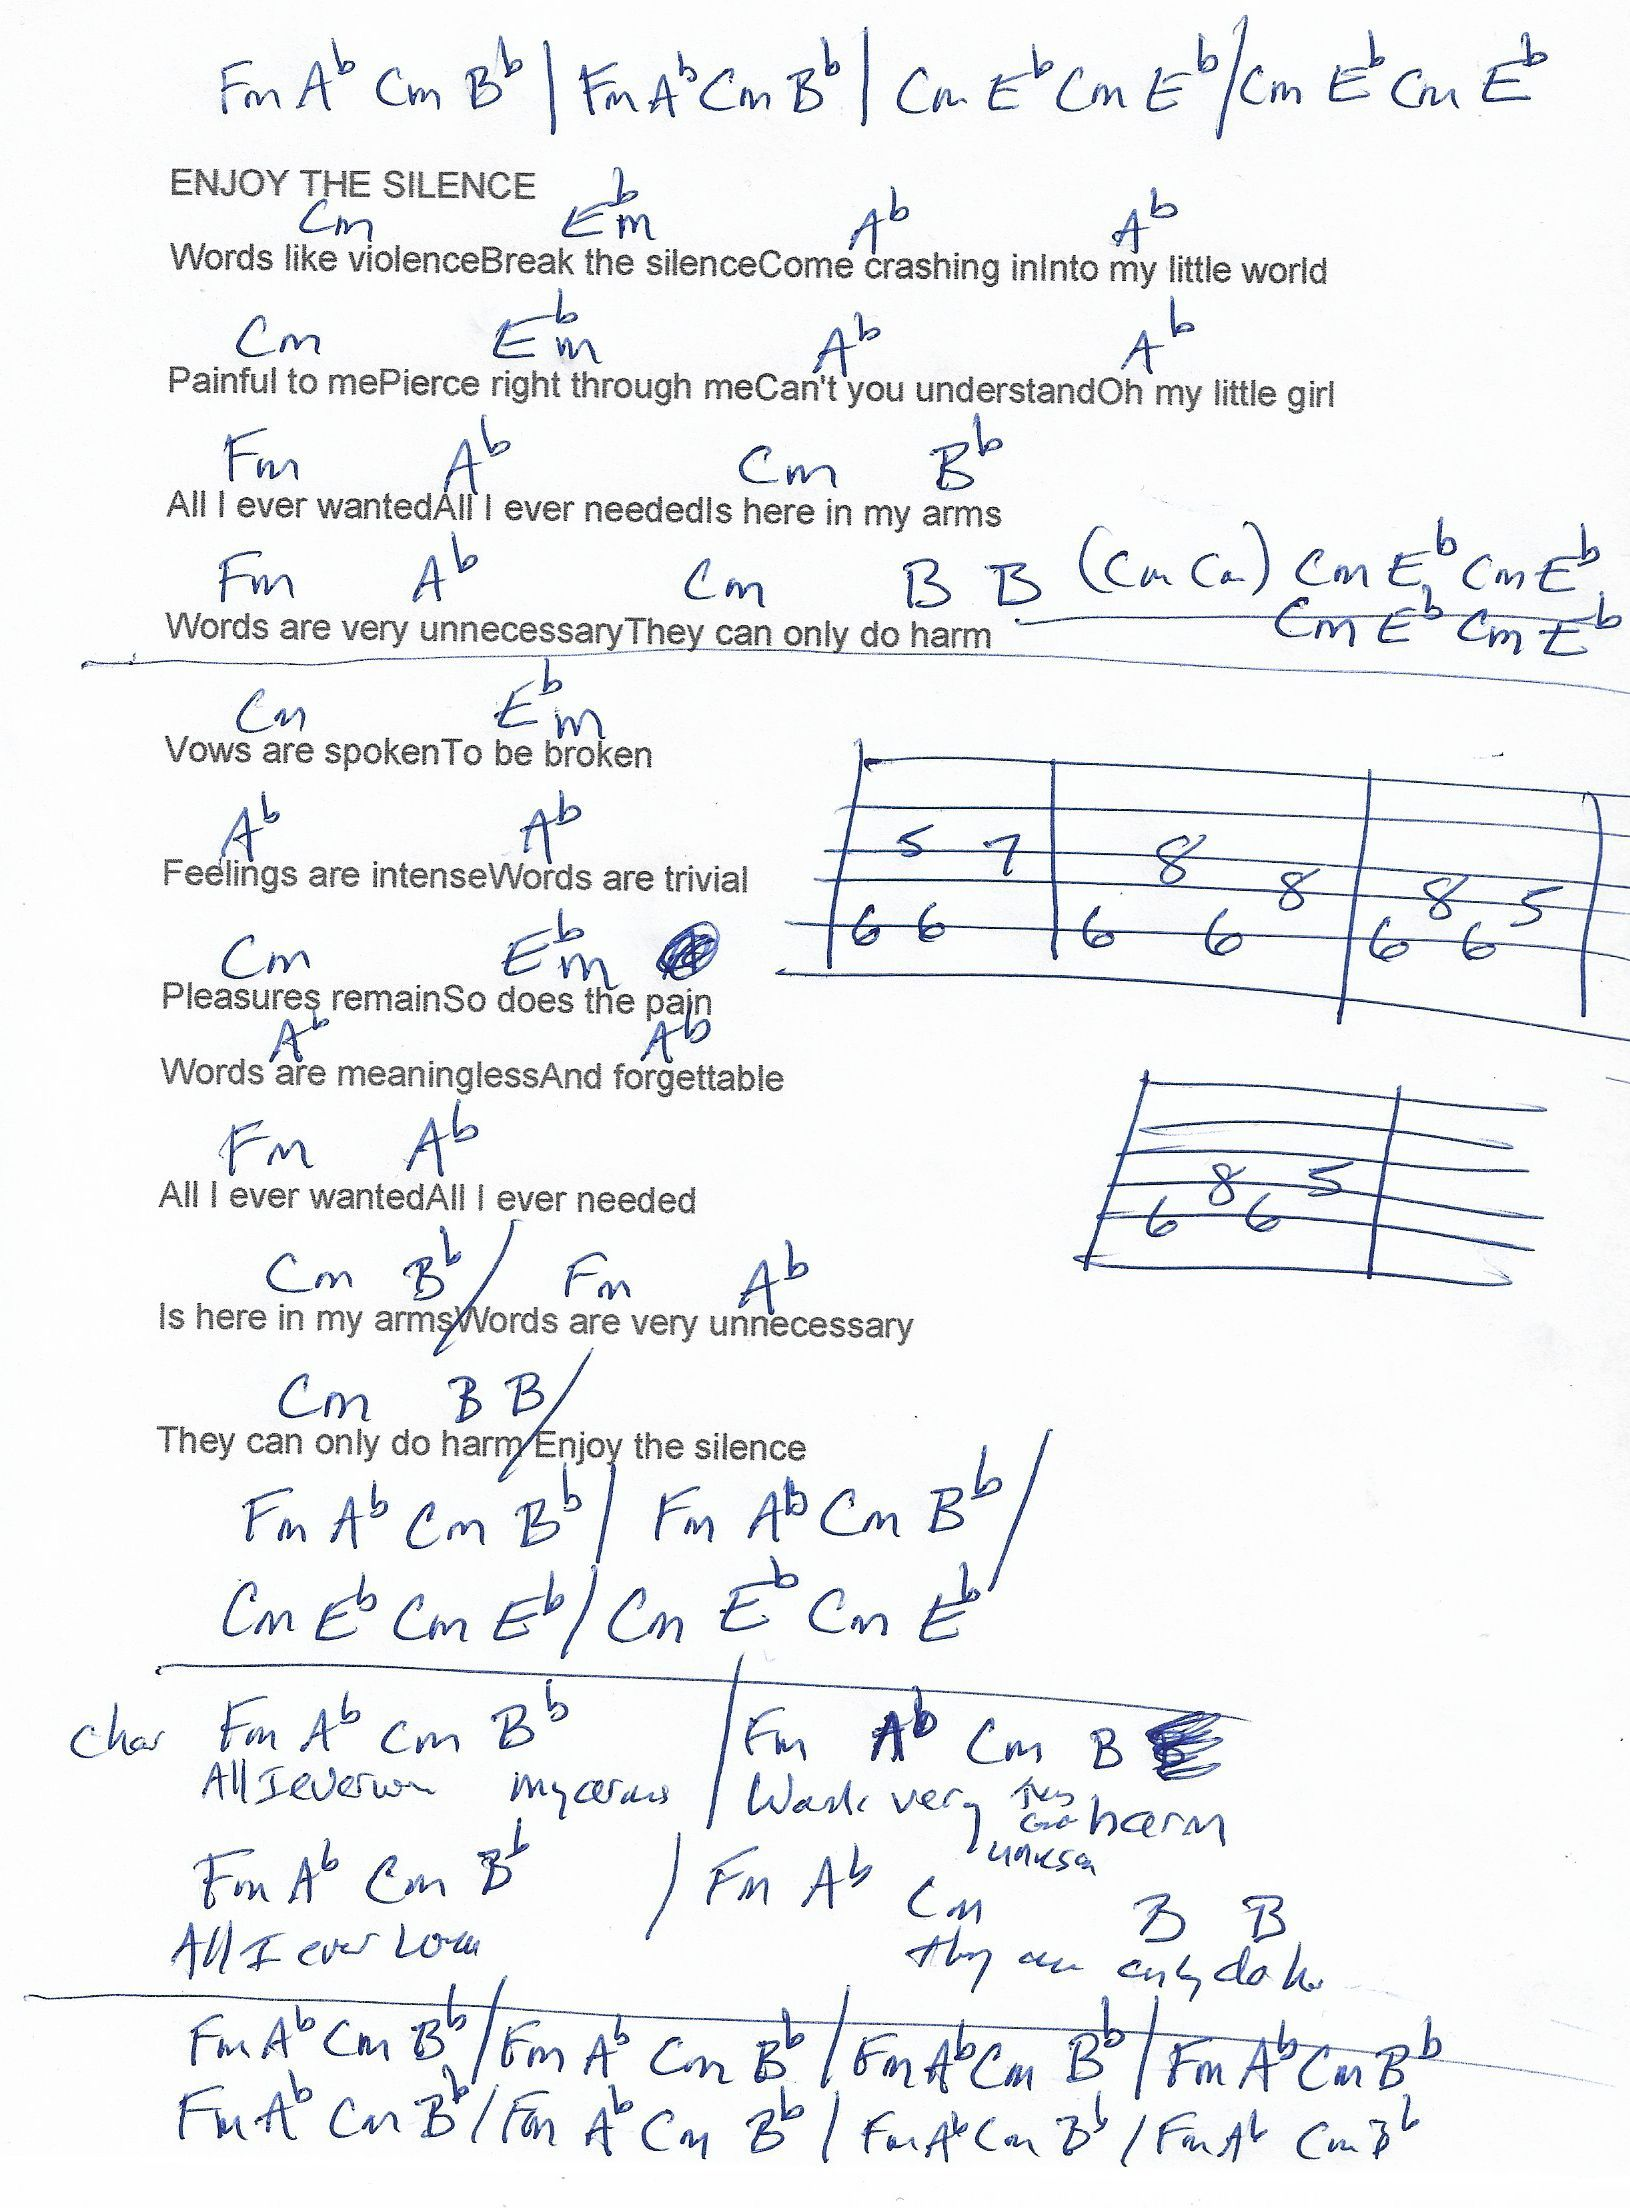 depeche mode chords